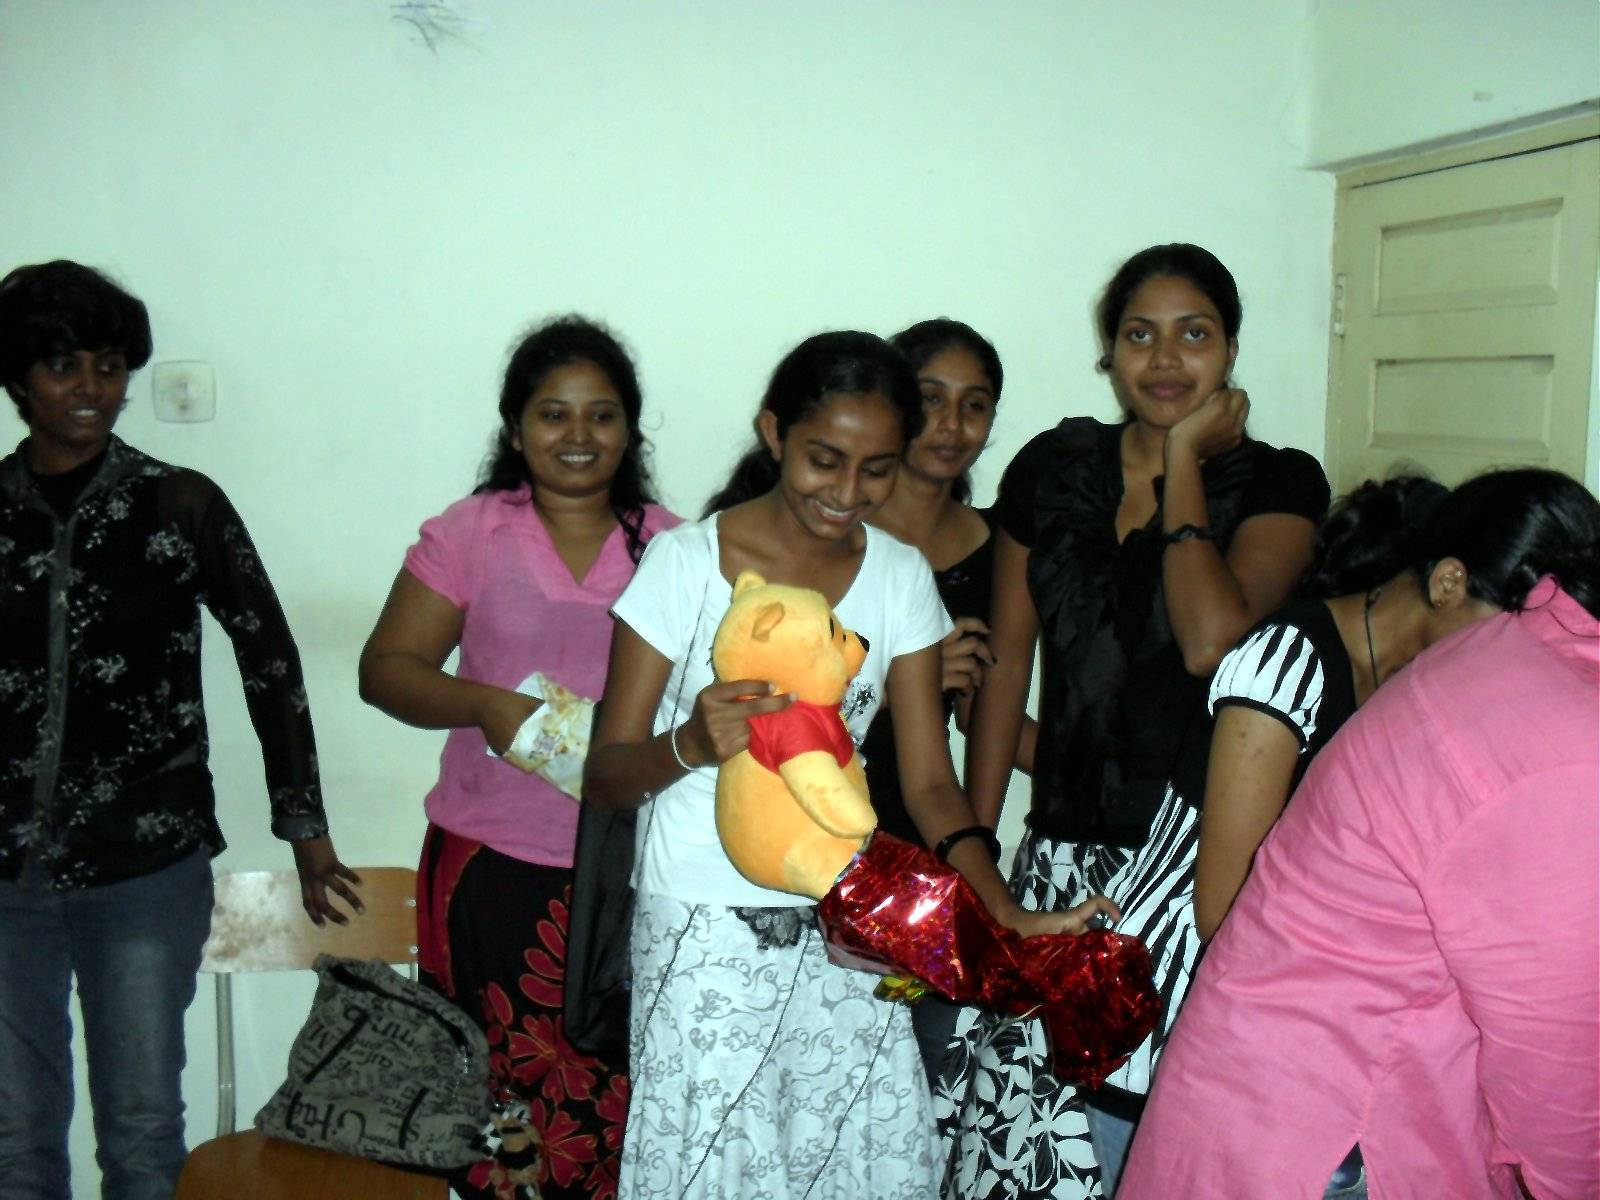 Students are busy with opening their gifts